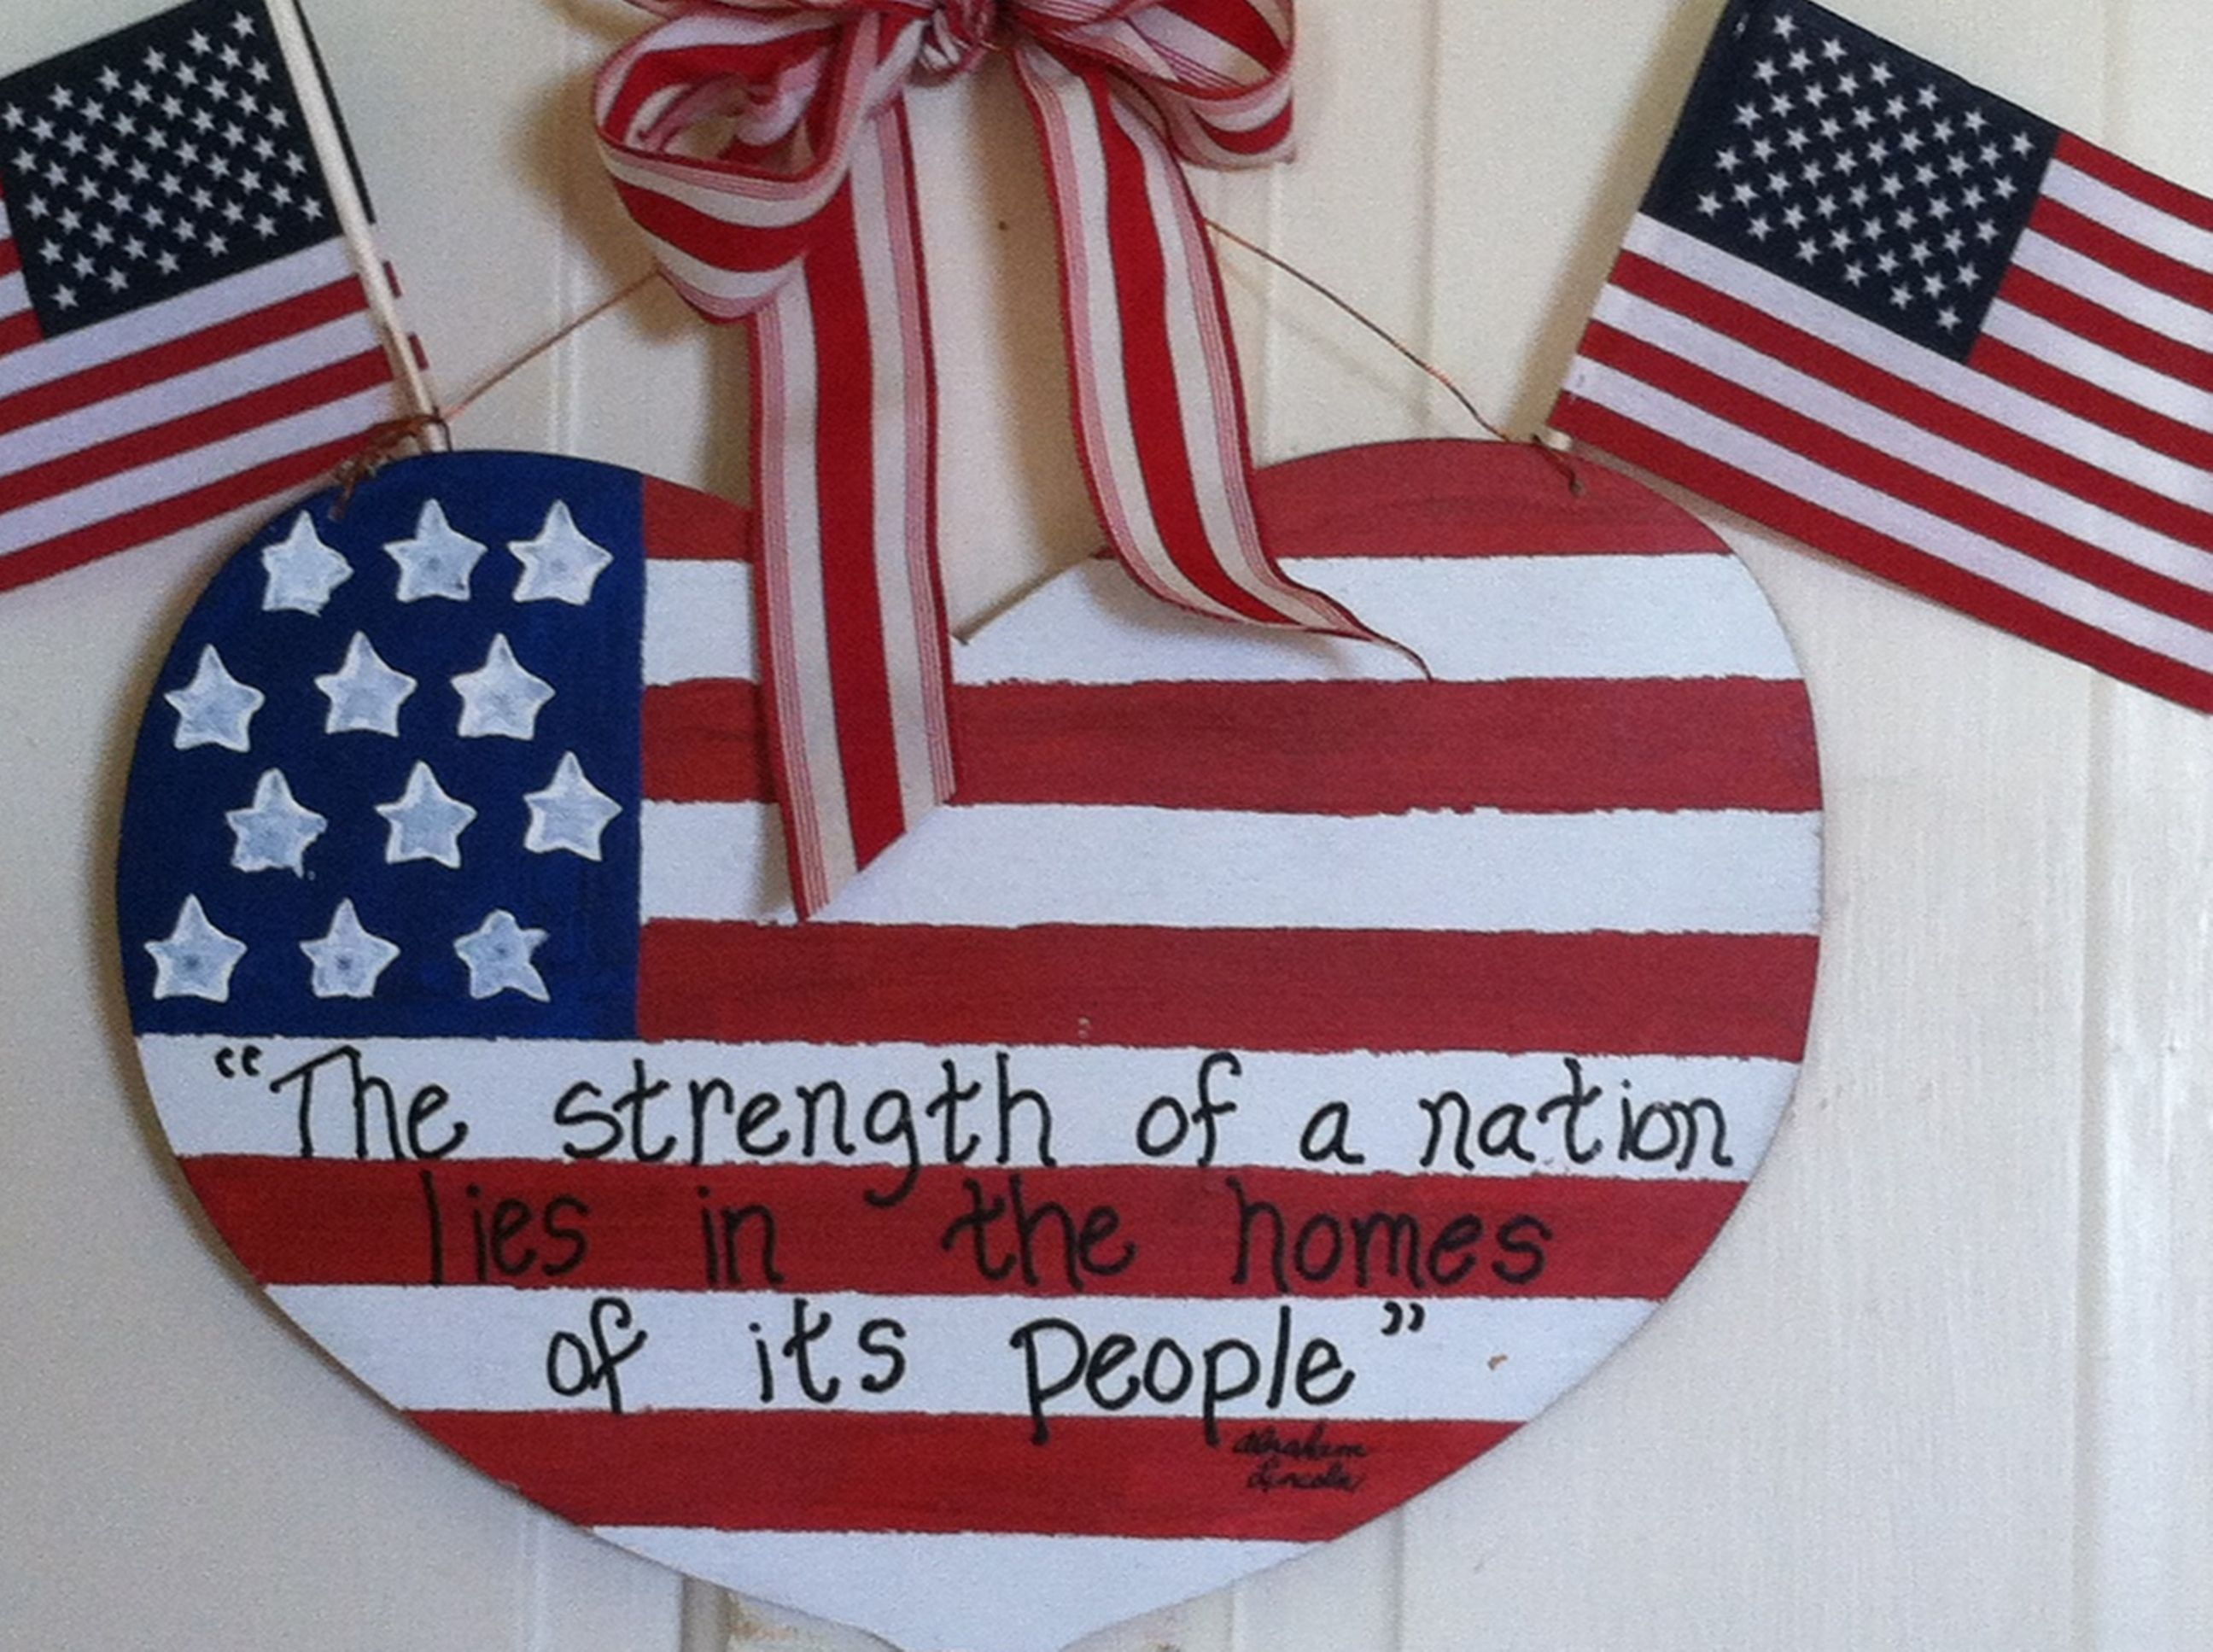 July 4th sayings and quotes happy birthday america two chums july 4th sayings and quotes happy birthday america two chums kristyandbryce Gallery